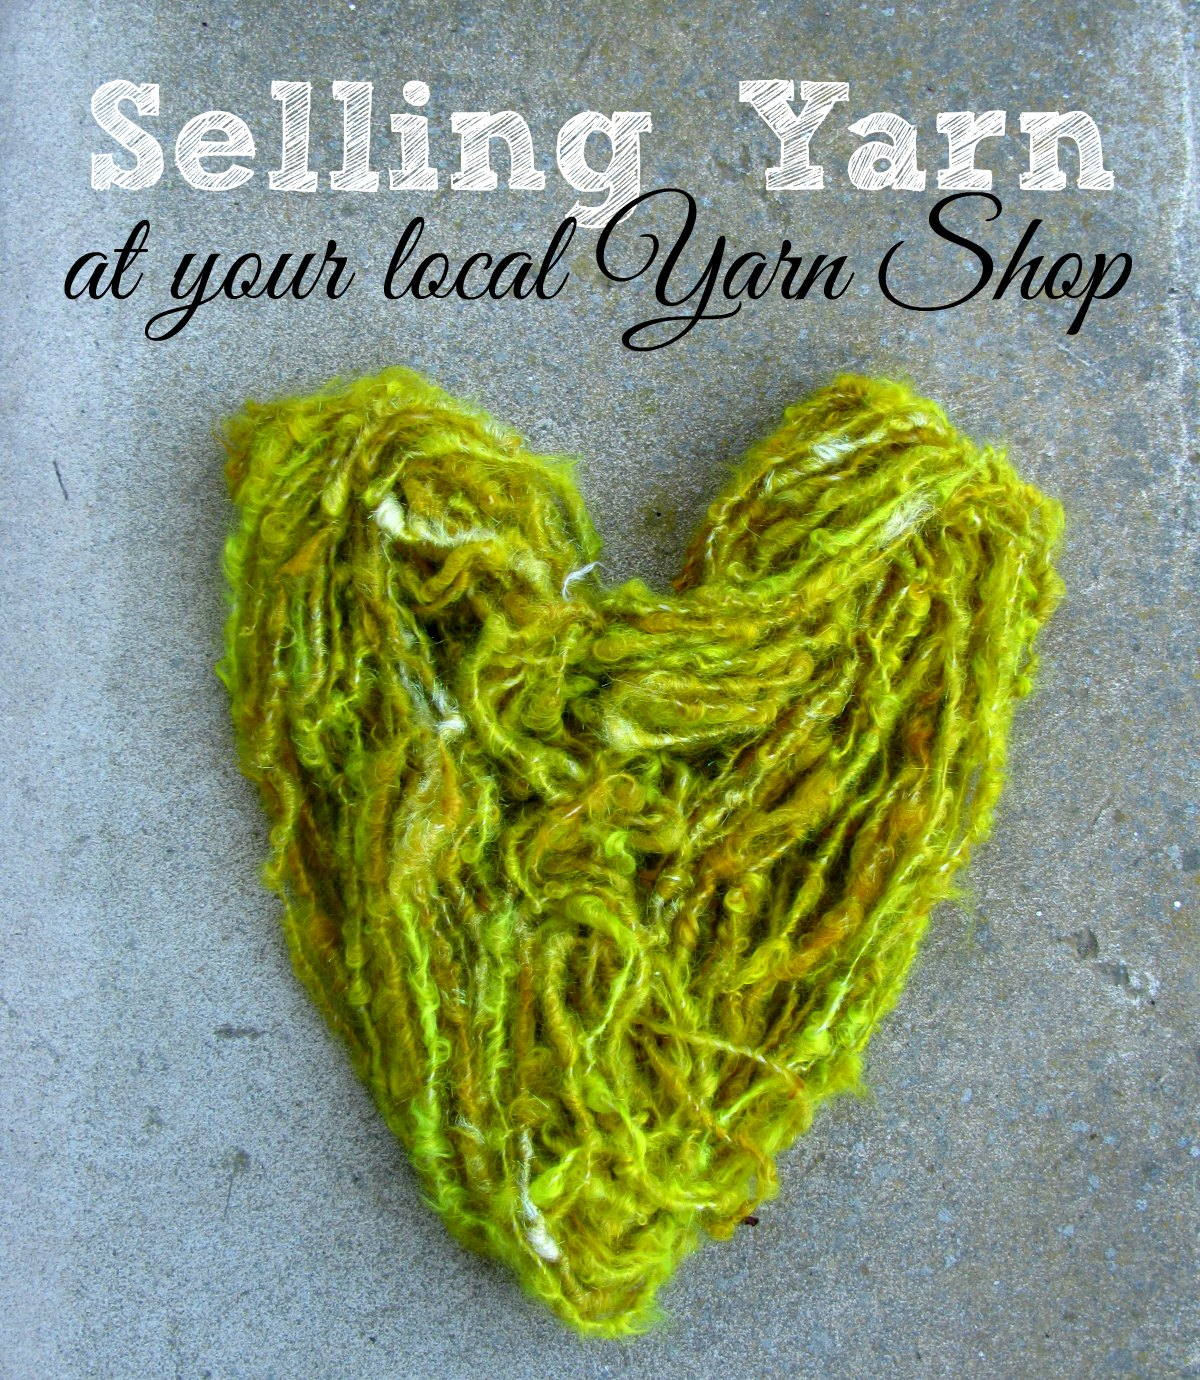 http://www.craftsy.com/blog/2014/11/selling-handspun-yarn/